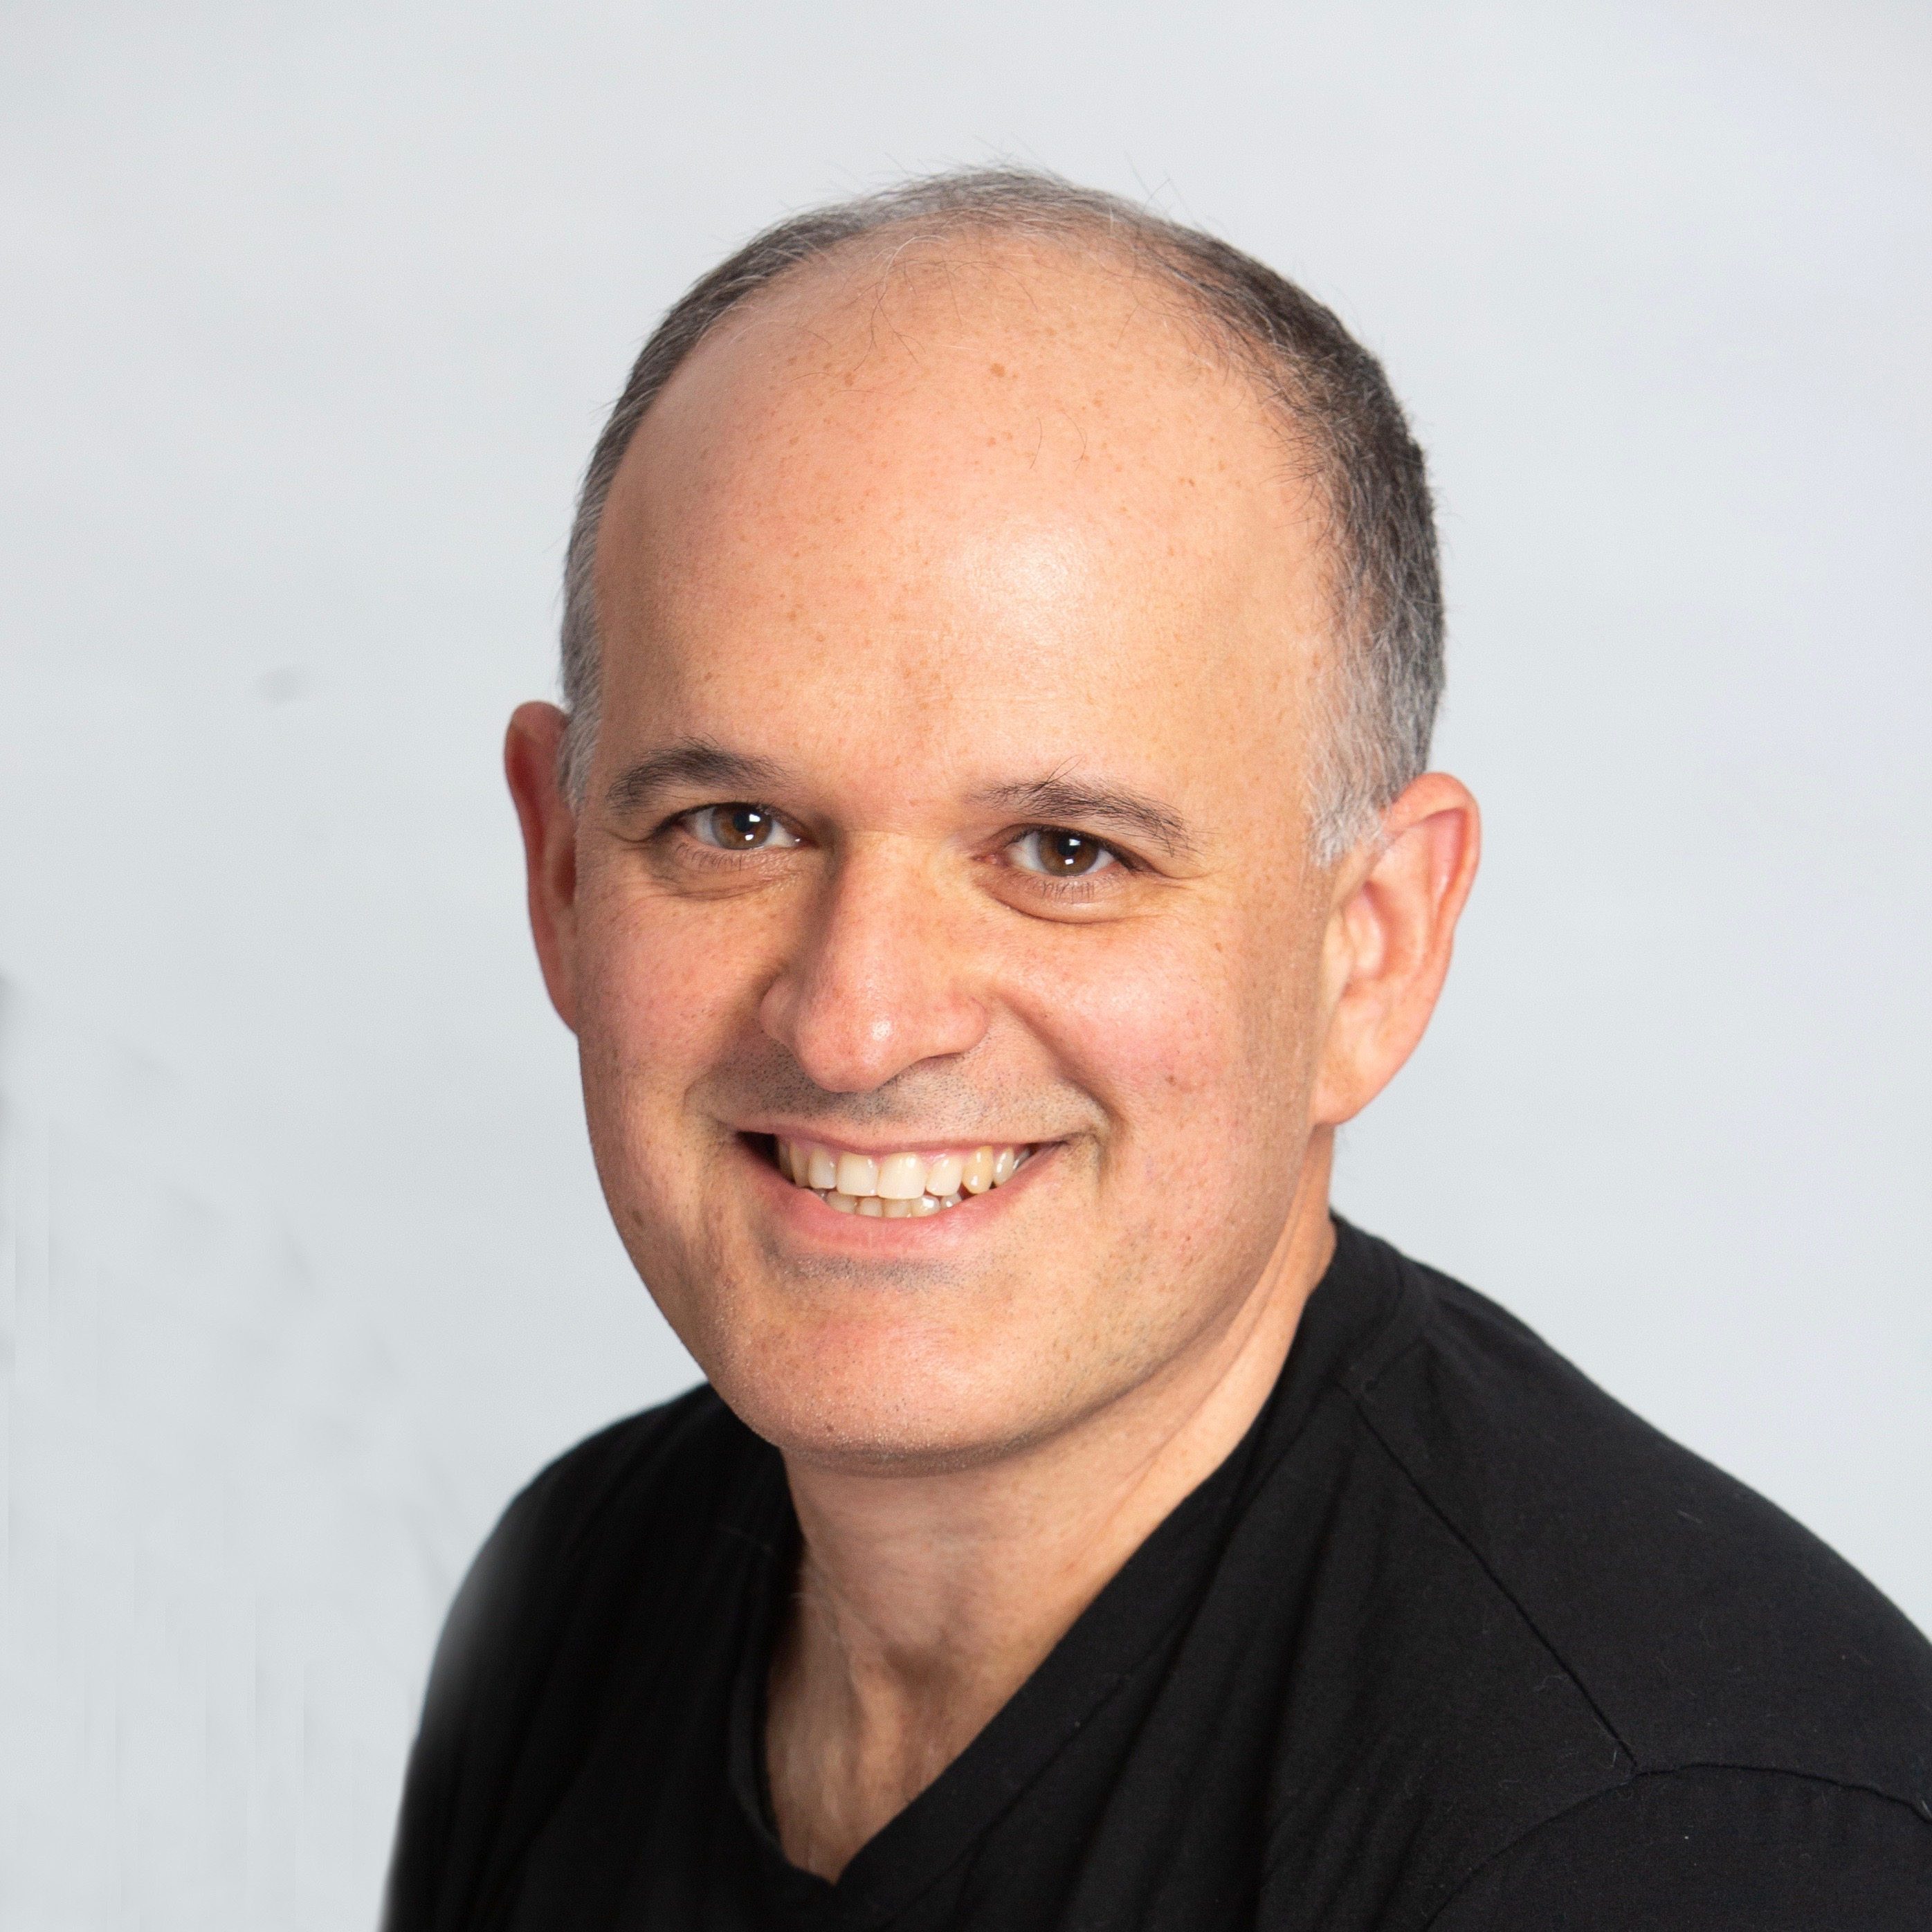 ROBERT WOLPOV – Internet and Software Executive